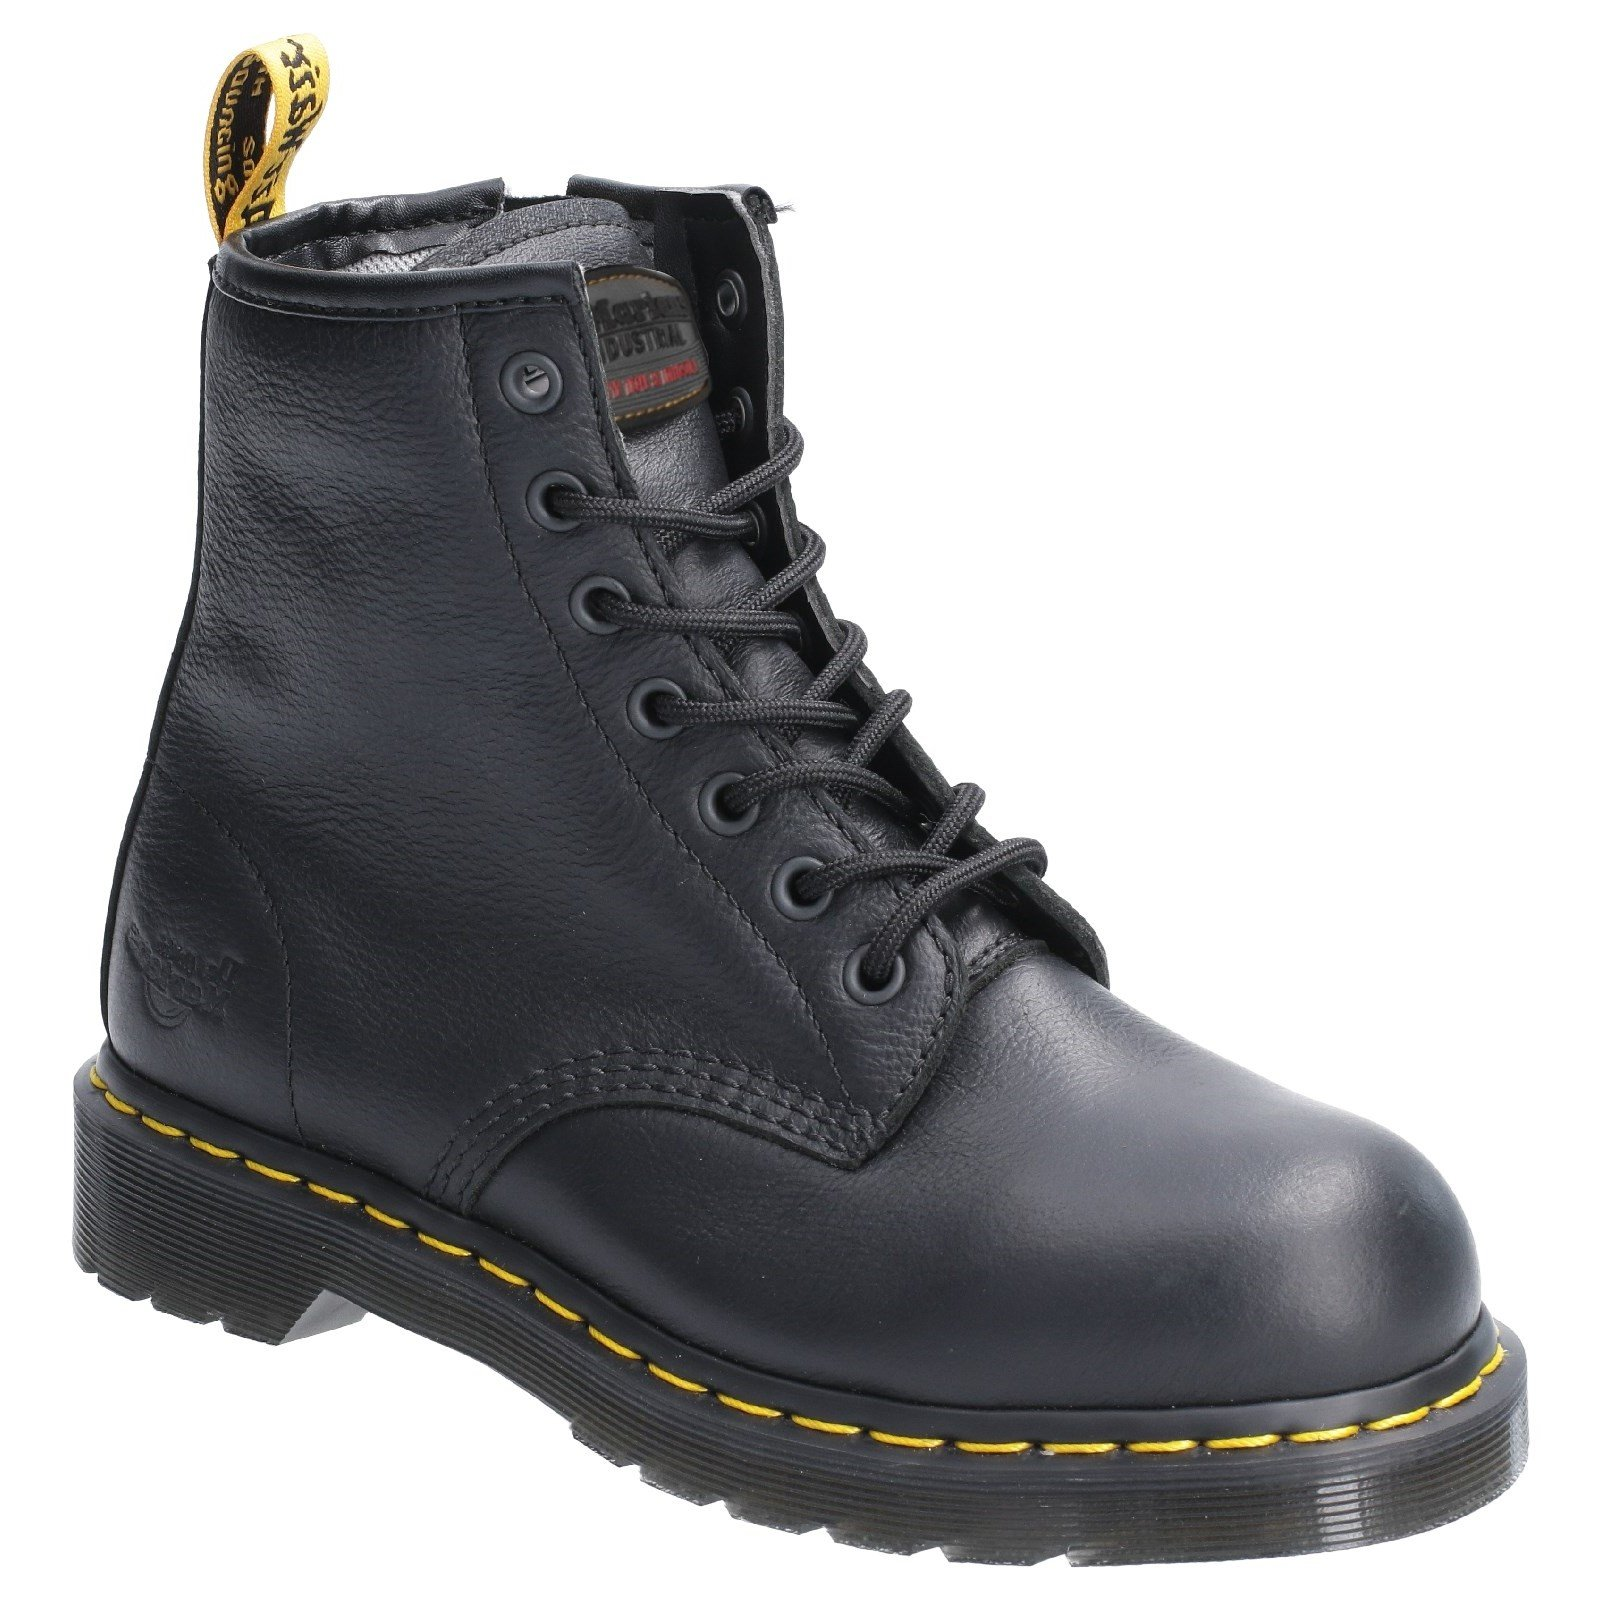 Dr Martens Women's Maple Zip Lace Up Safety Boot Various Colours 29515 - Black 3